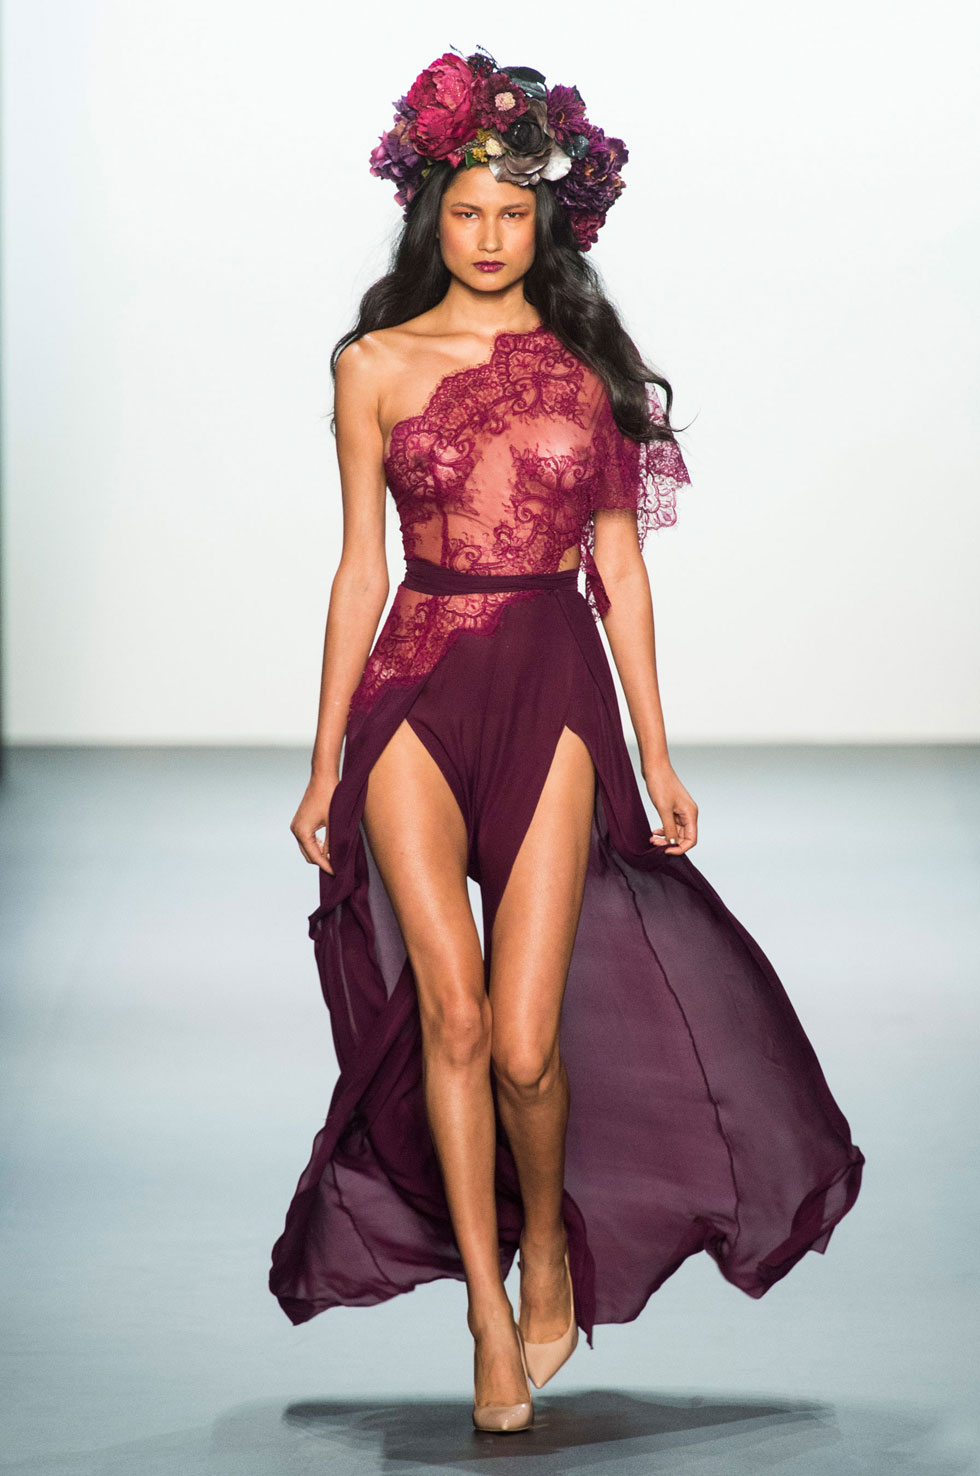 NYFW Michael Costello Fashion Show Spring Summer 2017 Louboutins  & Love Fashion Blog Esther Santer NYC Street Style Purple Loud Fun Floral Headpieces Red Cut Out Pretty Woman Girl Sparkle Train Gown Evening.jpg